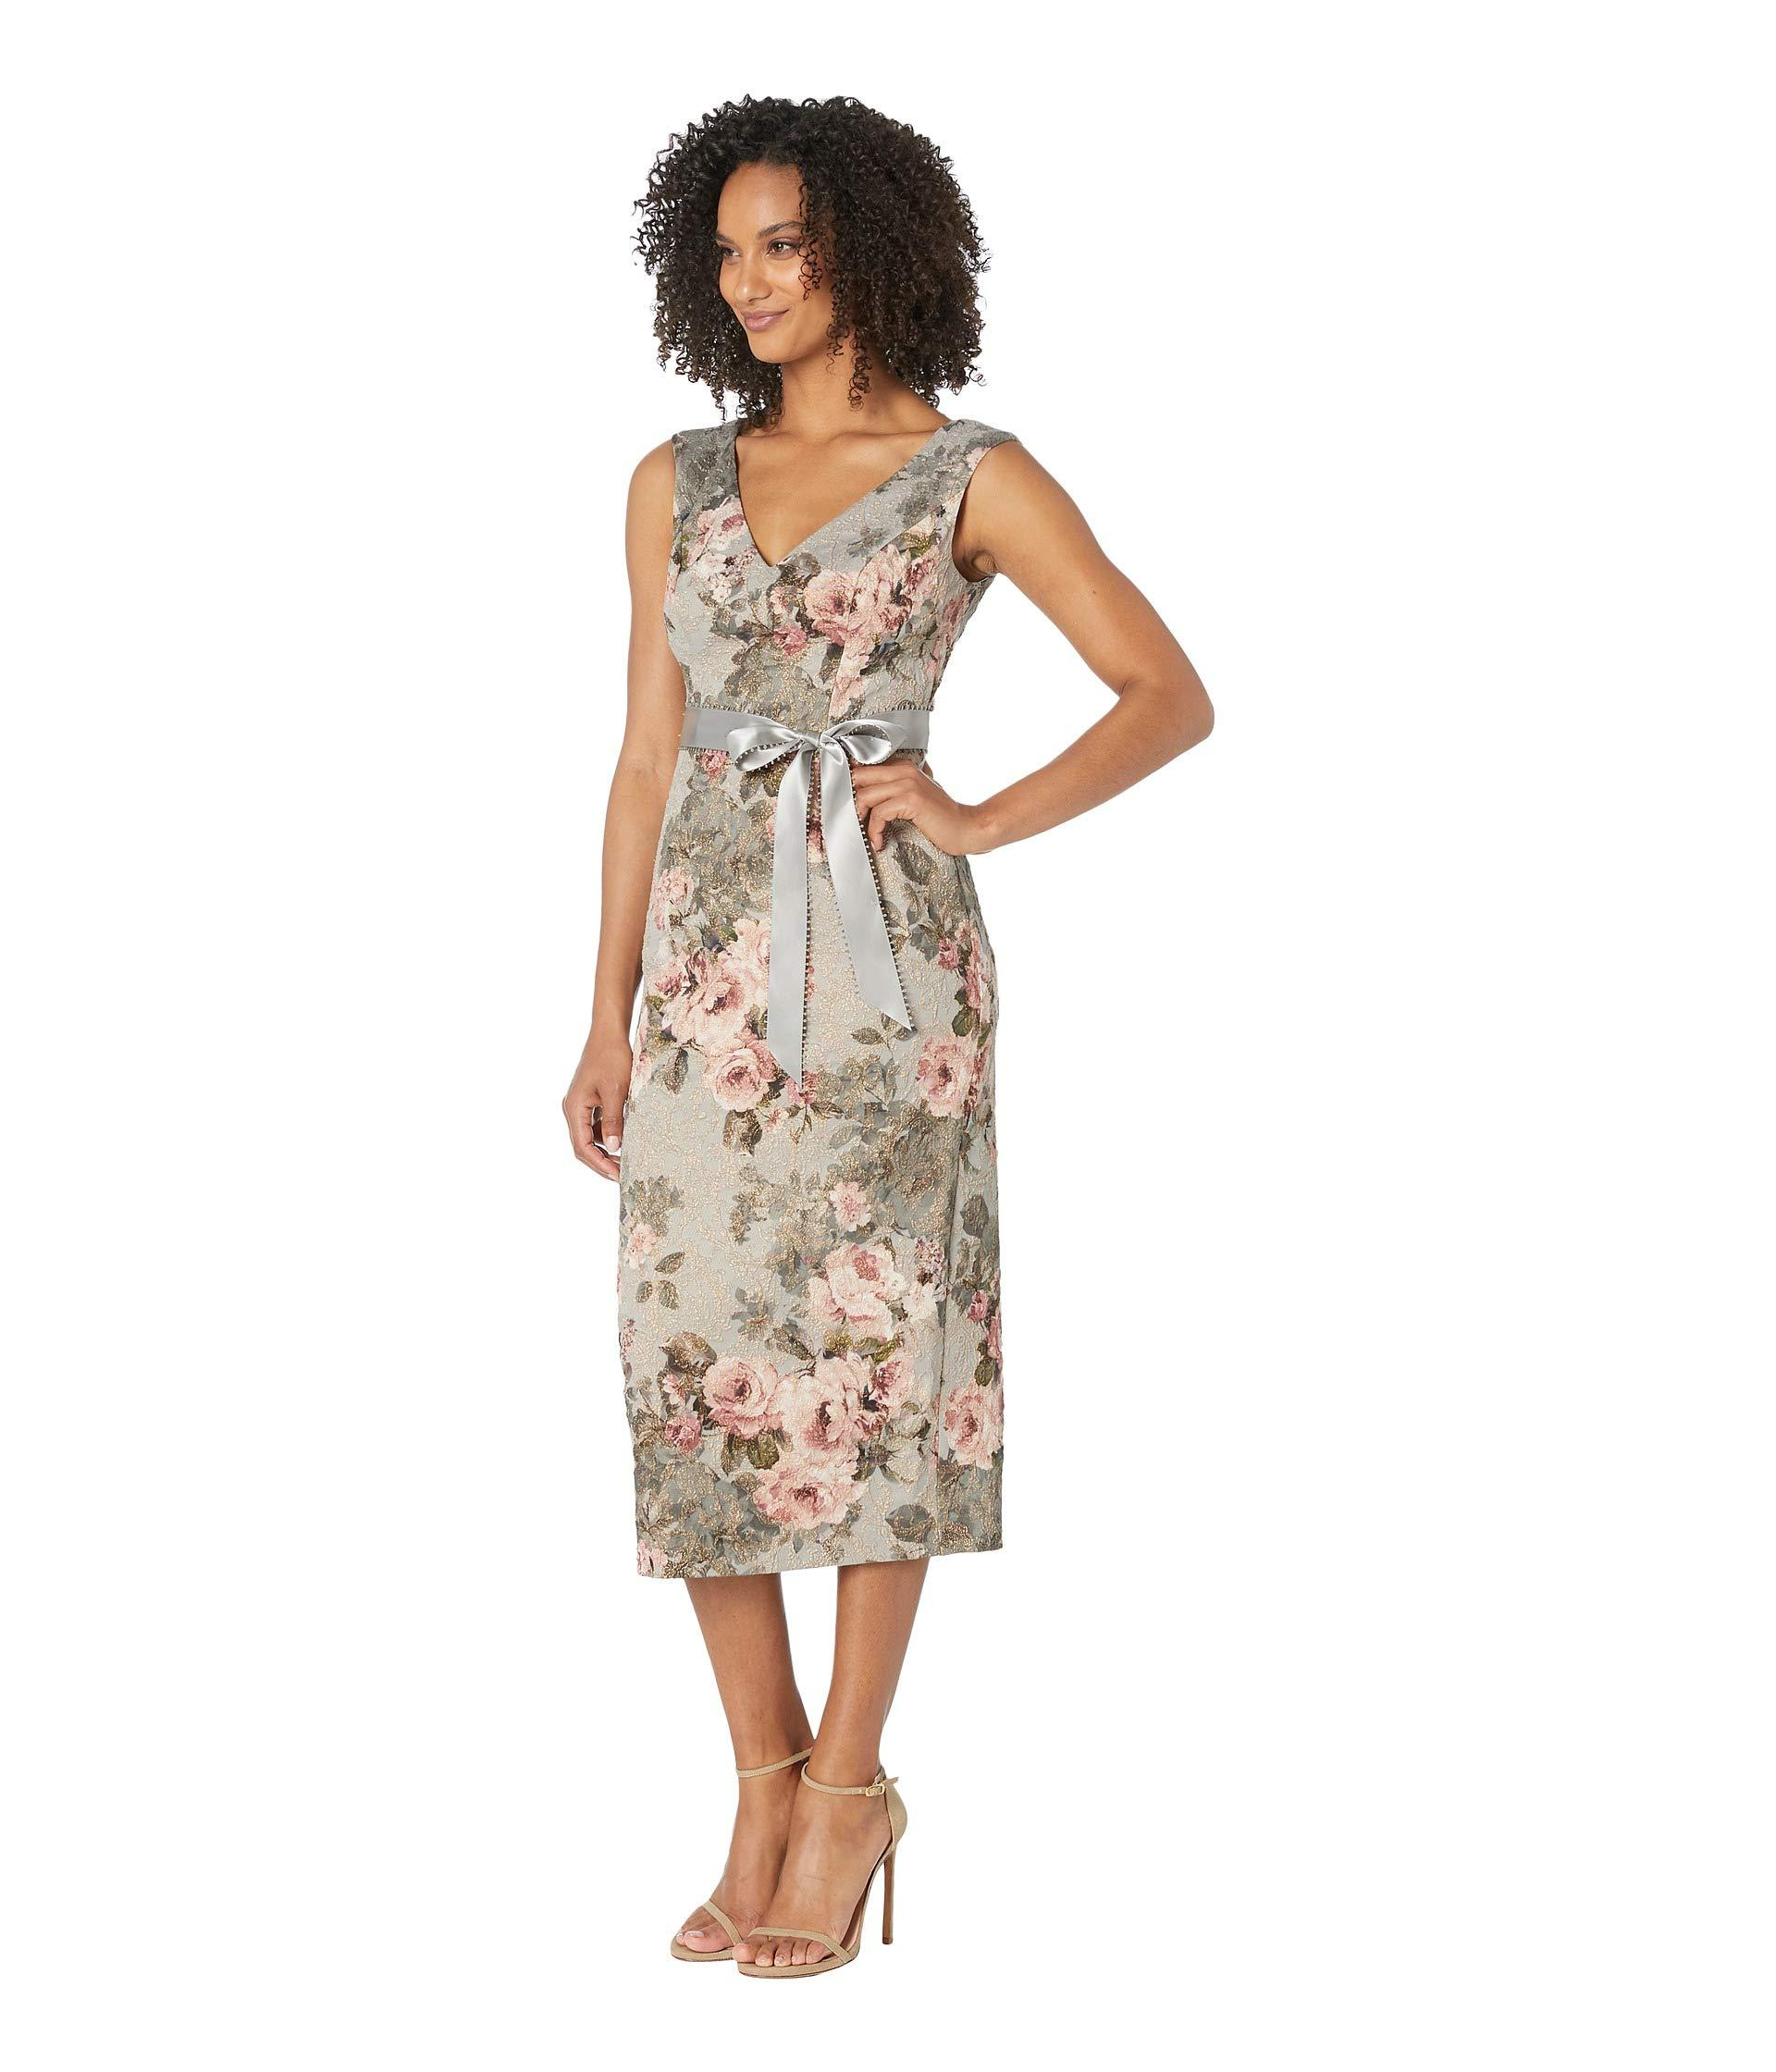 99570e36a4c6 Lyst - Adrianna Papell Metallic Matlesse Floral Midi Dress With ...